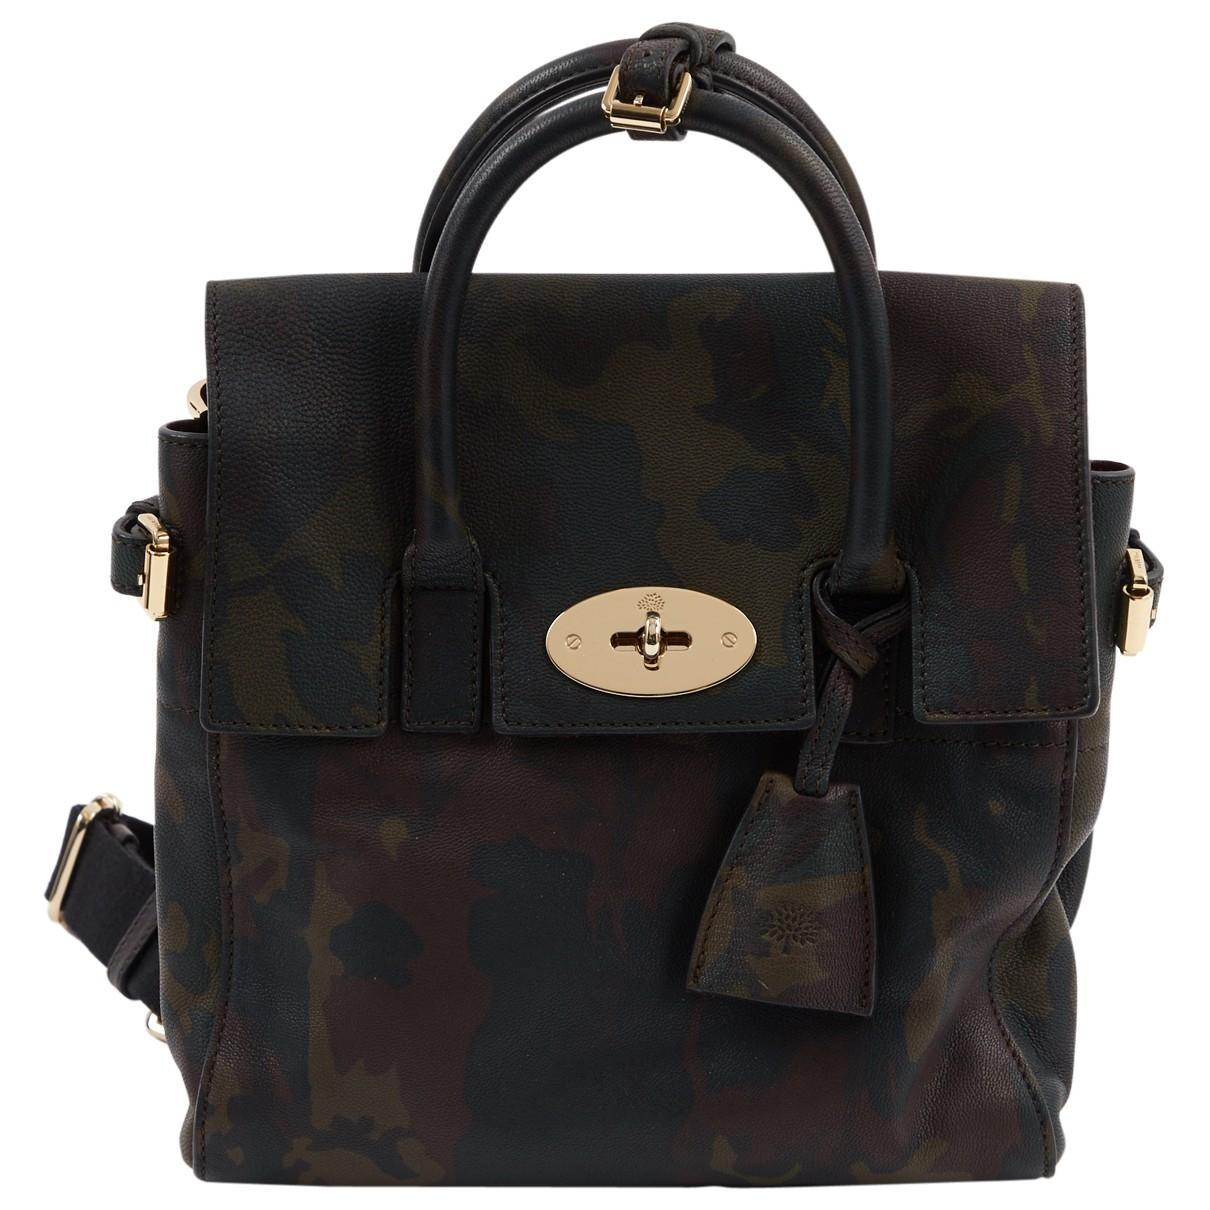 b575ecfe1600 Mulberry. Women s Pre-owned Cara Delevigne Brown Leather Handbags.  981   883 From Vestiaire Collective